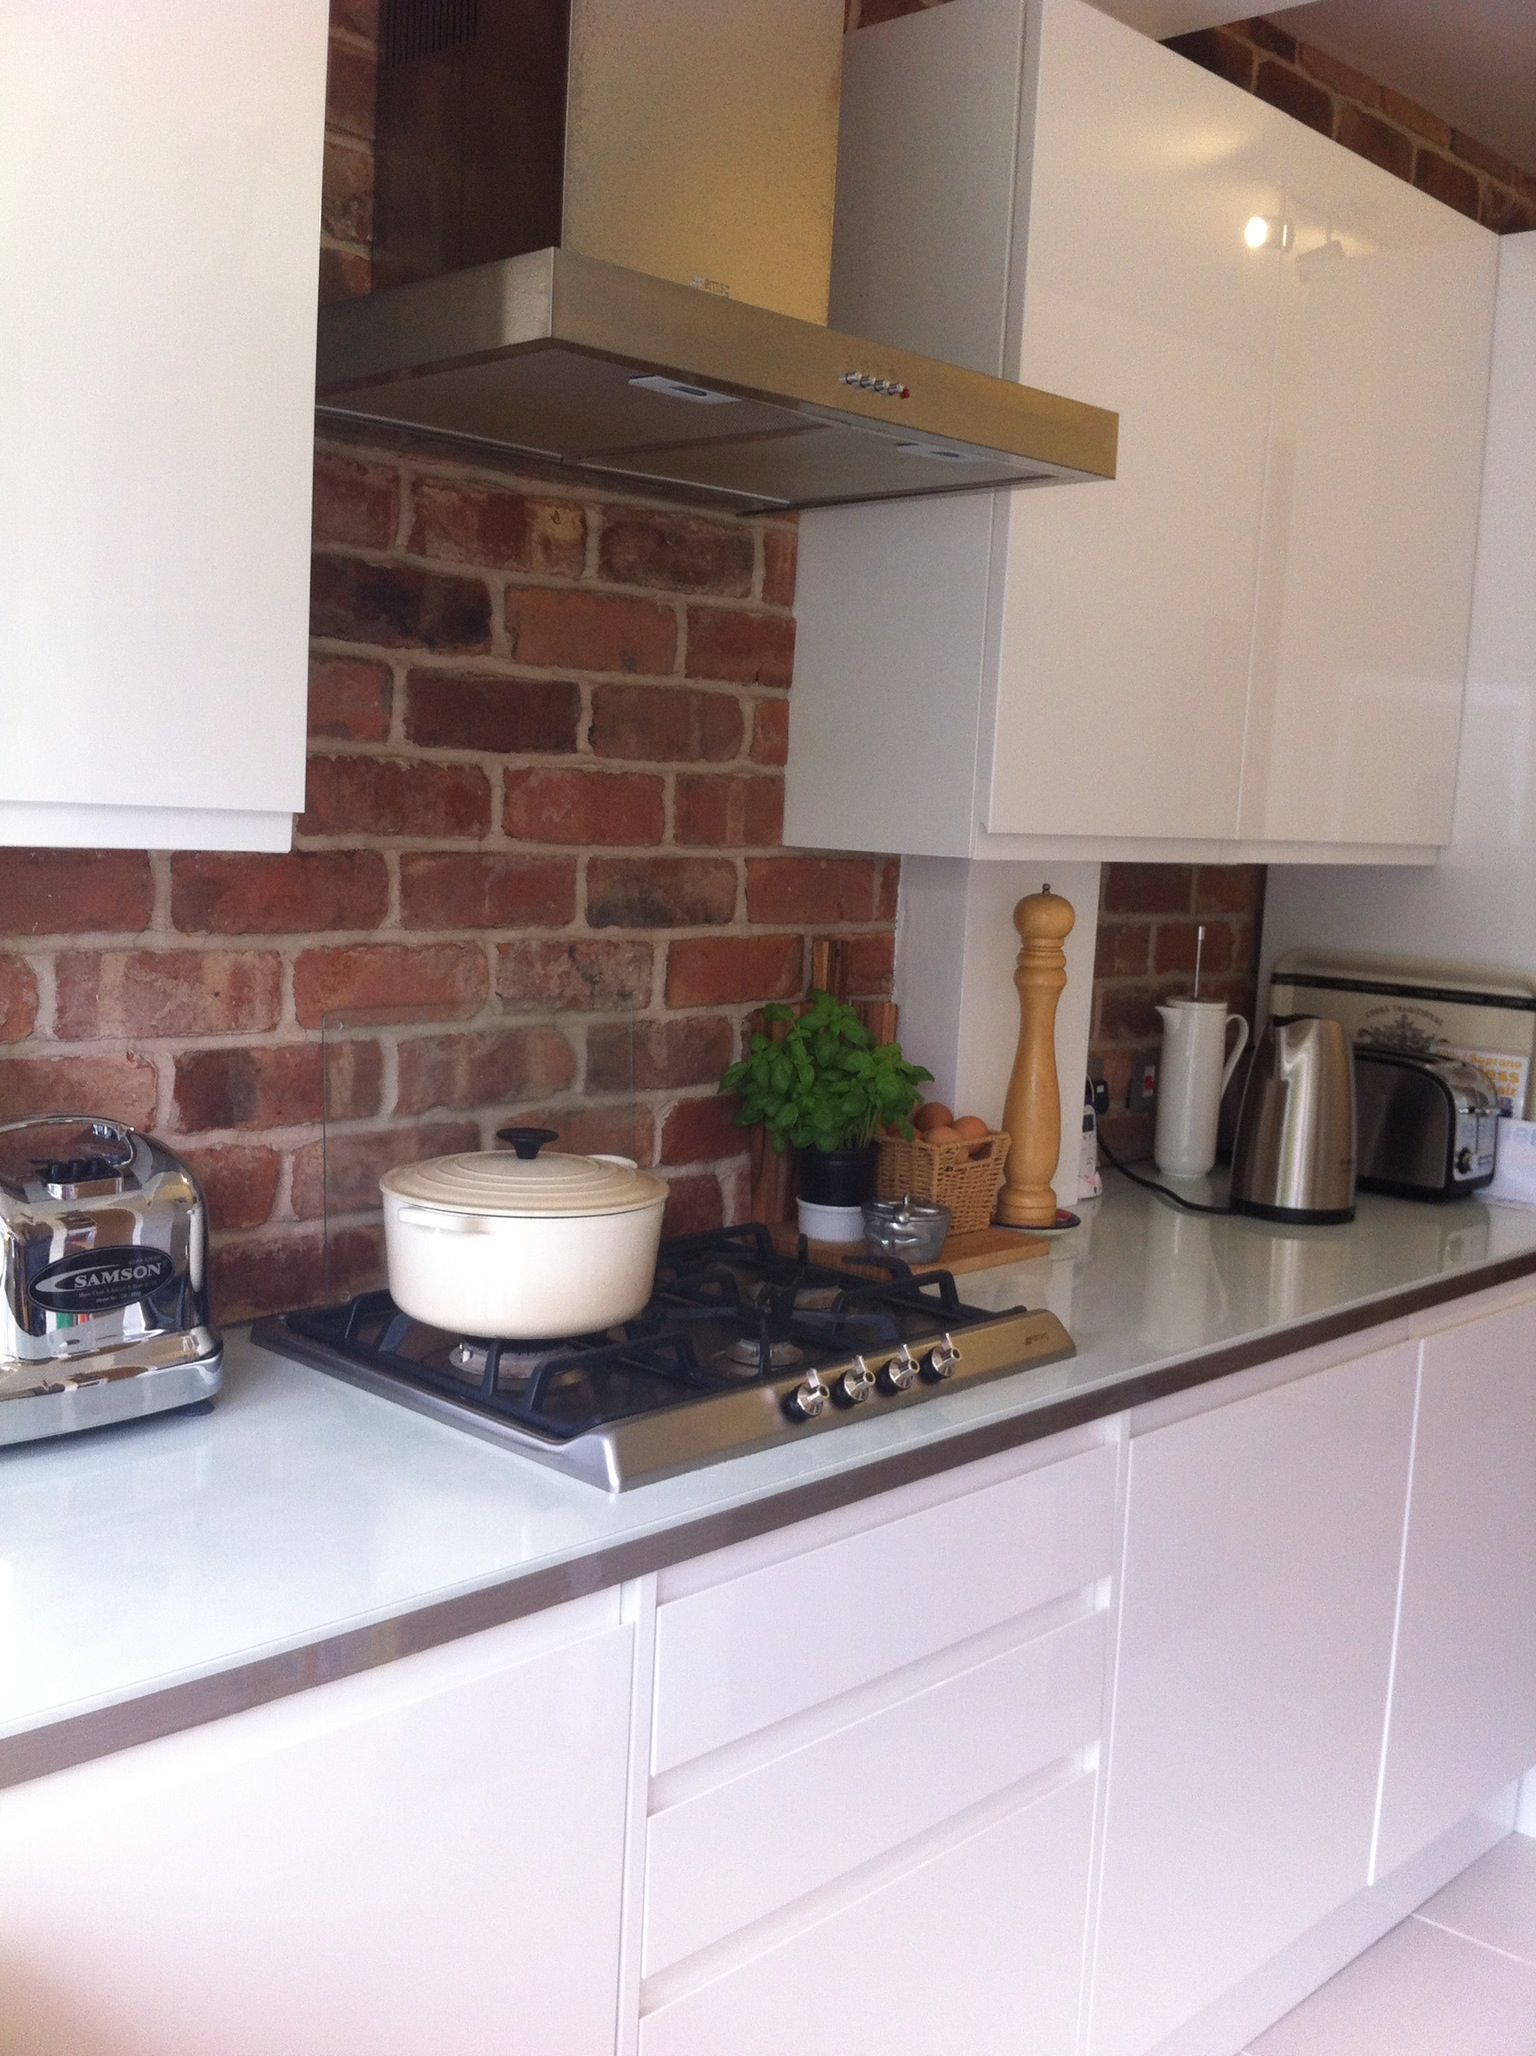 Kitchen Brick Wall Exposed Brick Kitchen With Clean Gloss White Units